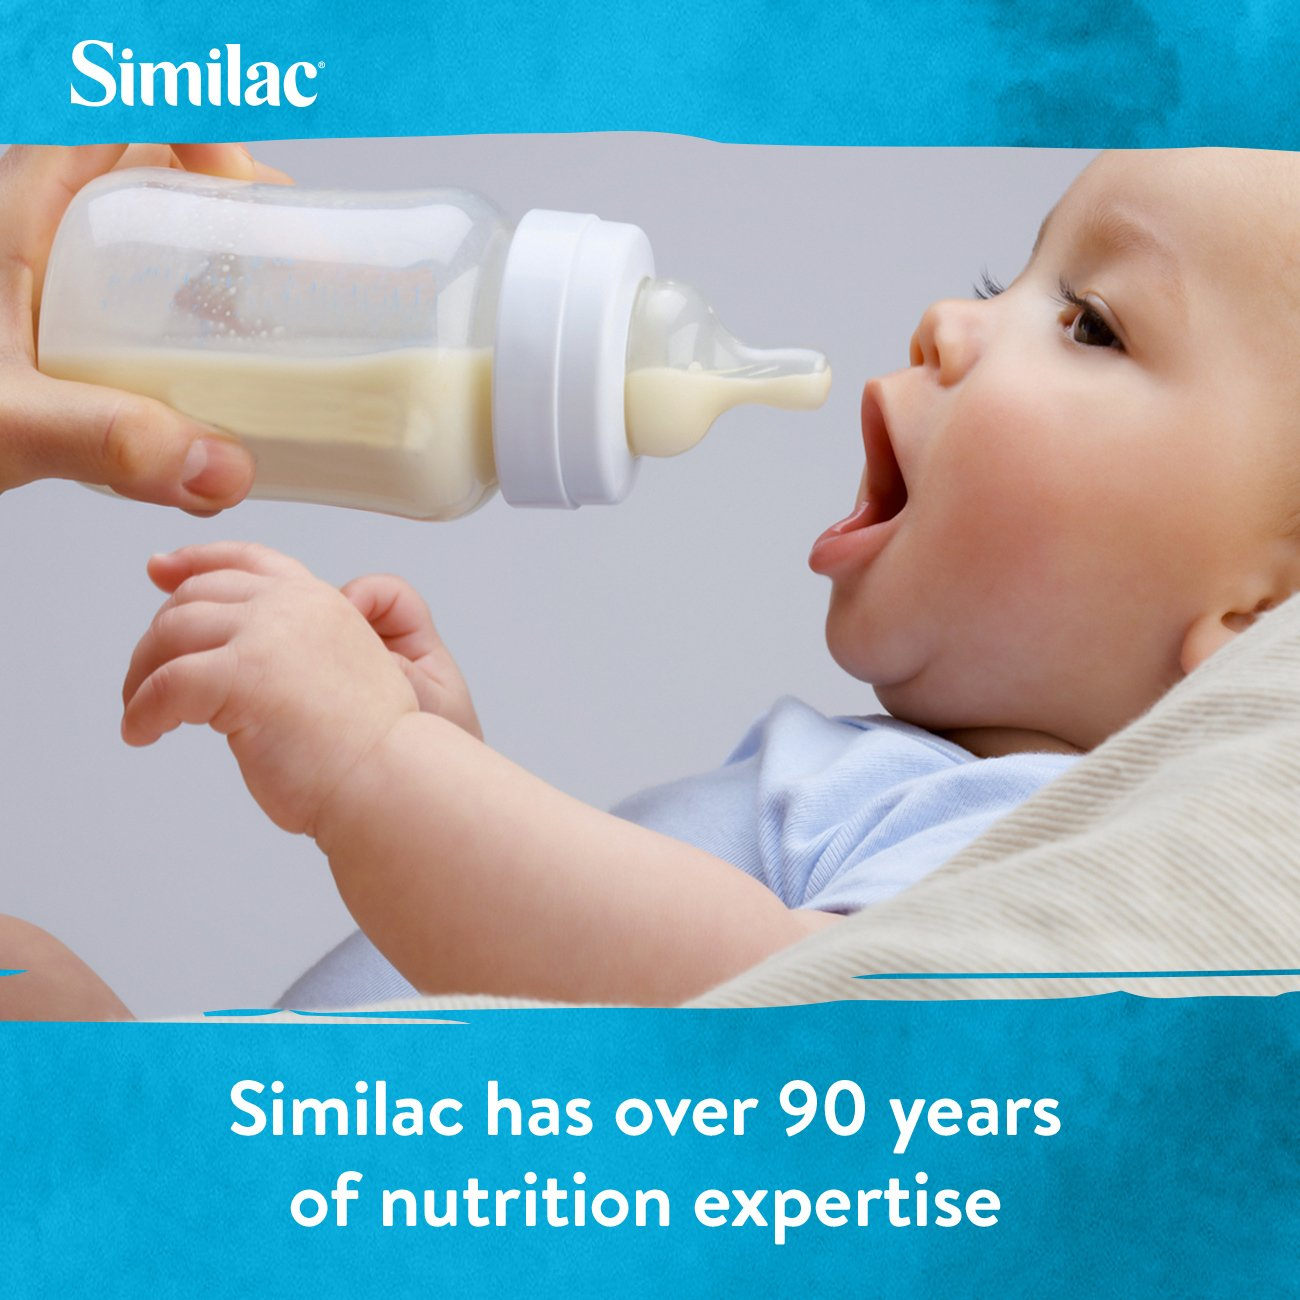 Similac For Supplementation Infant Formula with Iron, Ready-to-Feed Bottles, 2 Ounce, (48 ct) by Similac (Image #2)